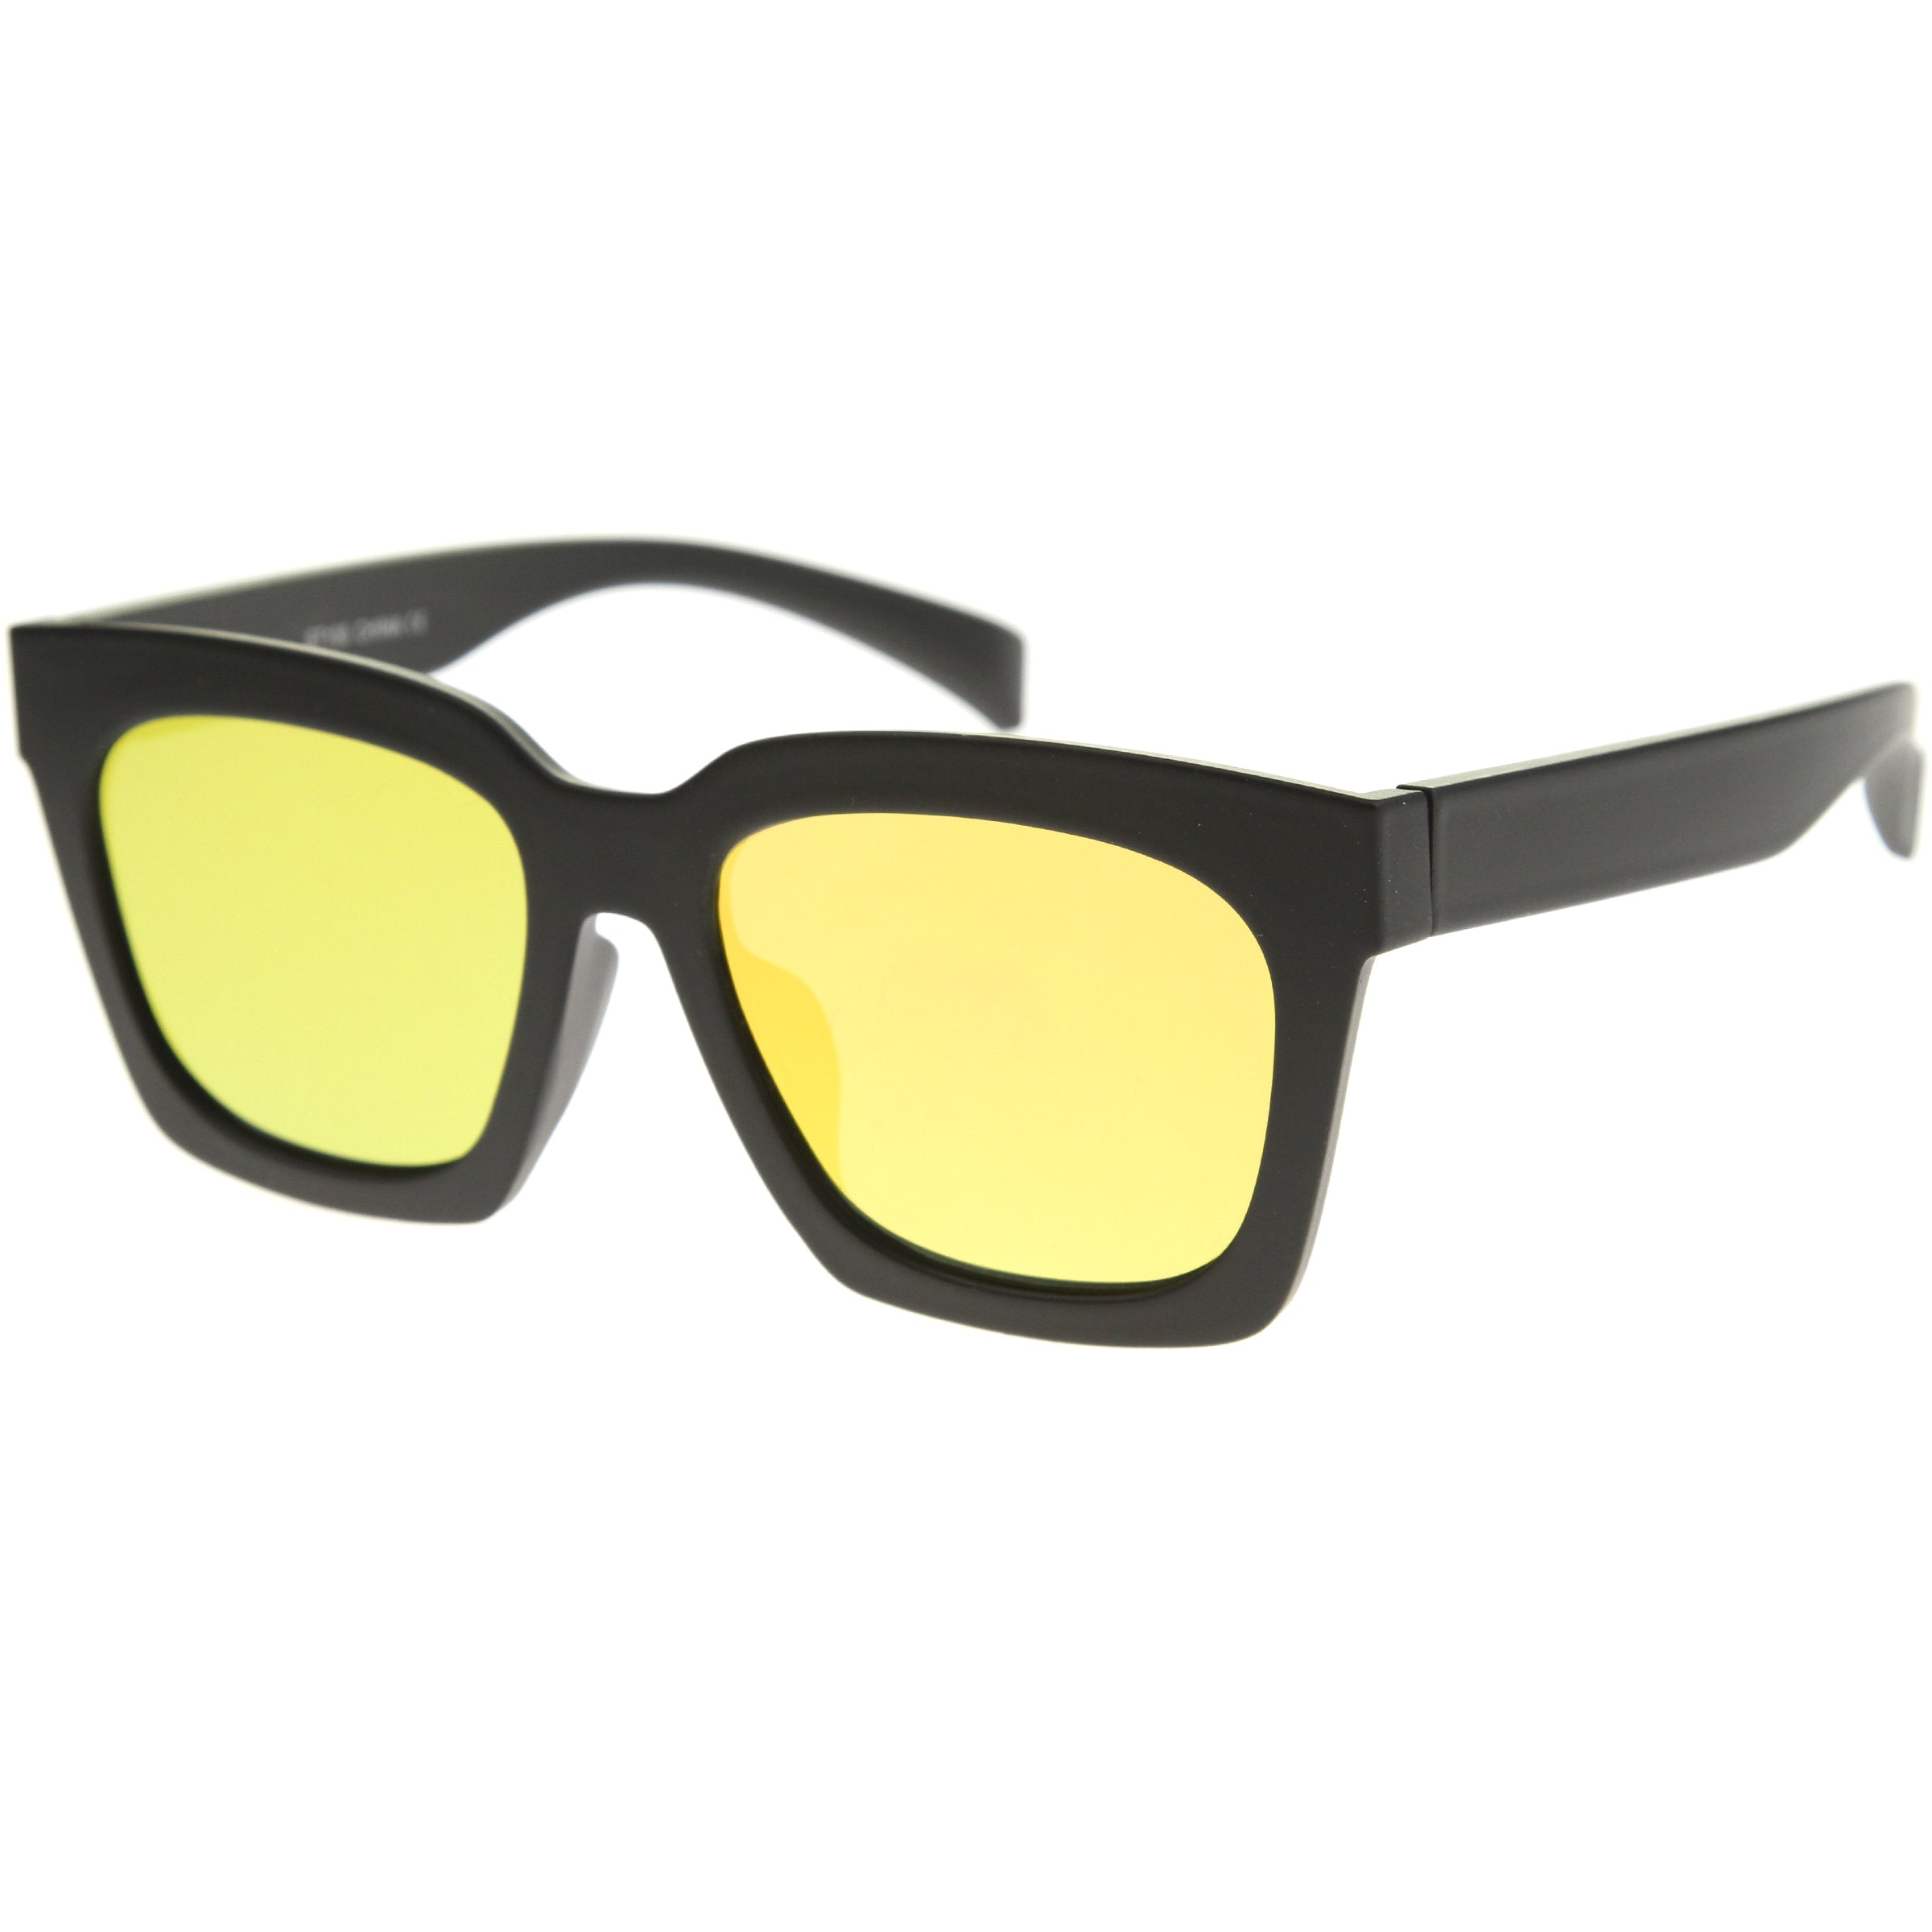 Retro Matte Horn Rimmed Colored Mirror Flat Lens Oversize Square Sunglasses 54mm - sunglass.la - 10